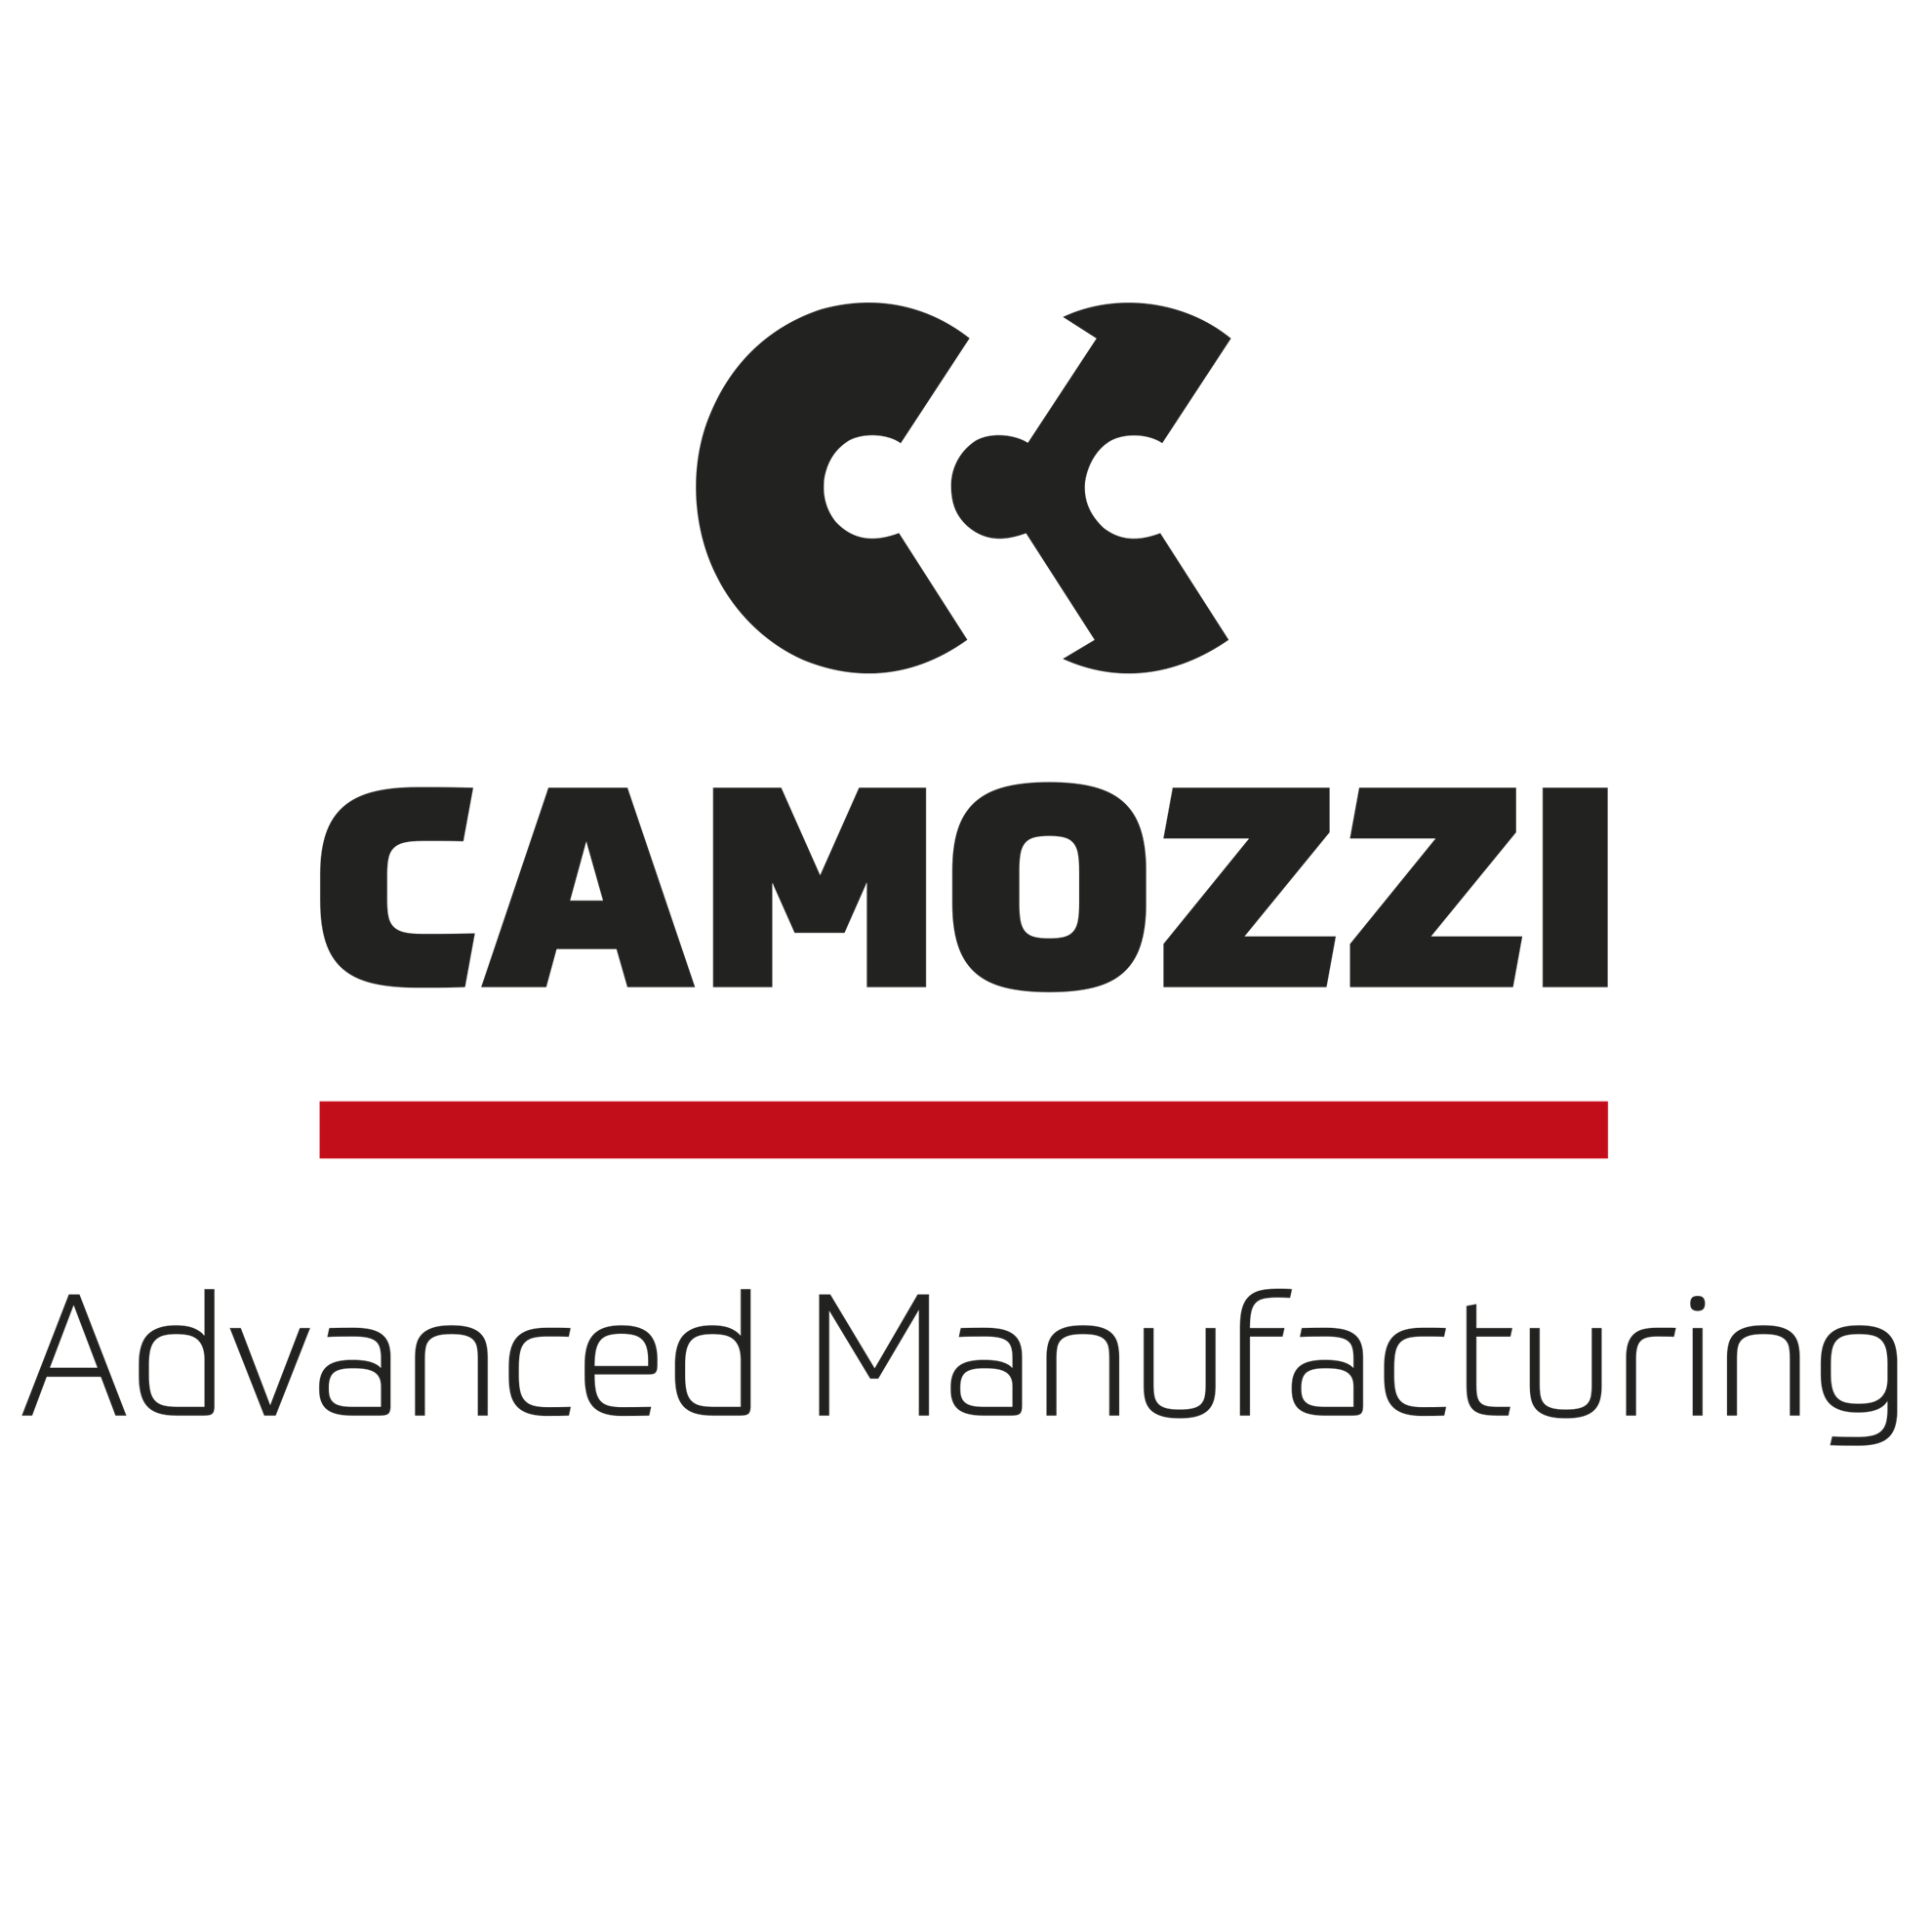 Camozzi Advanced Manufacturing